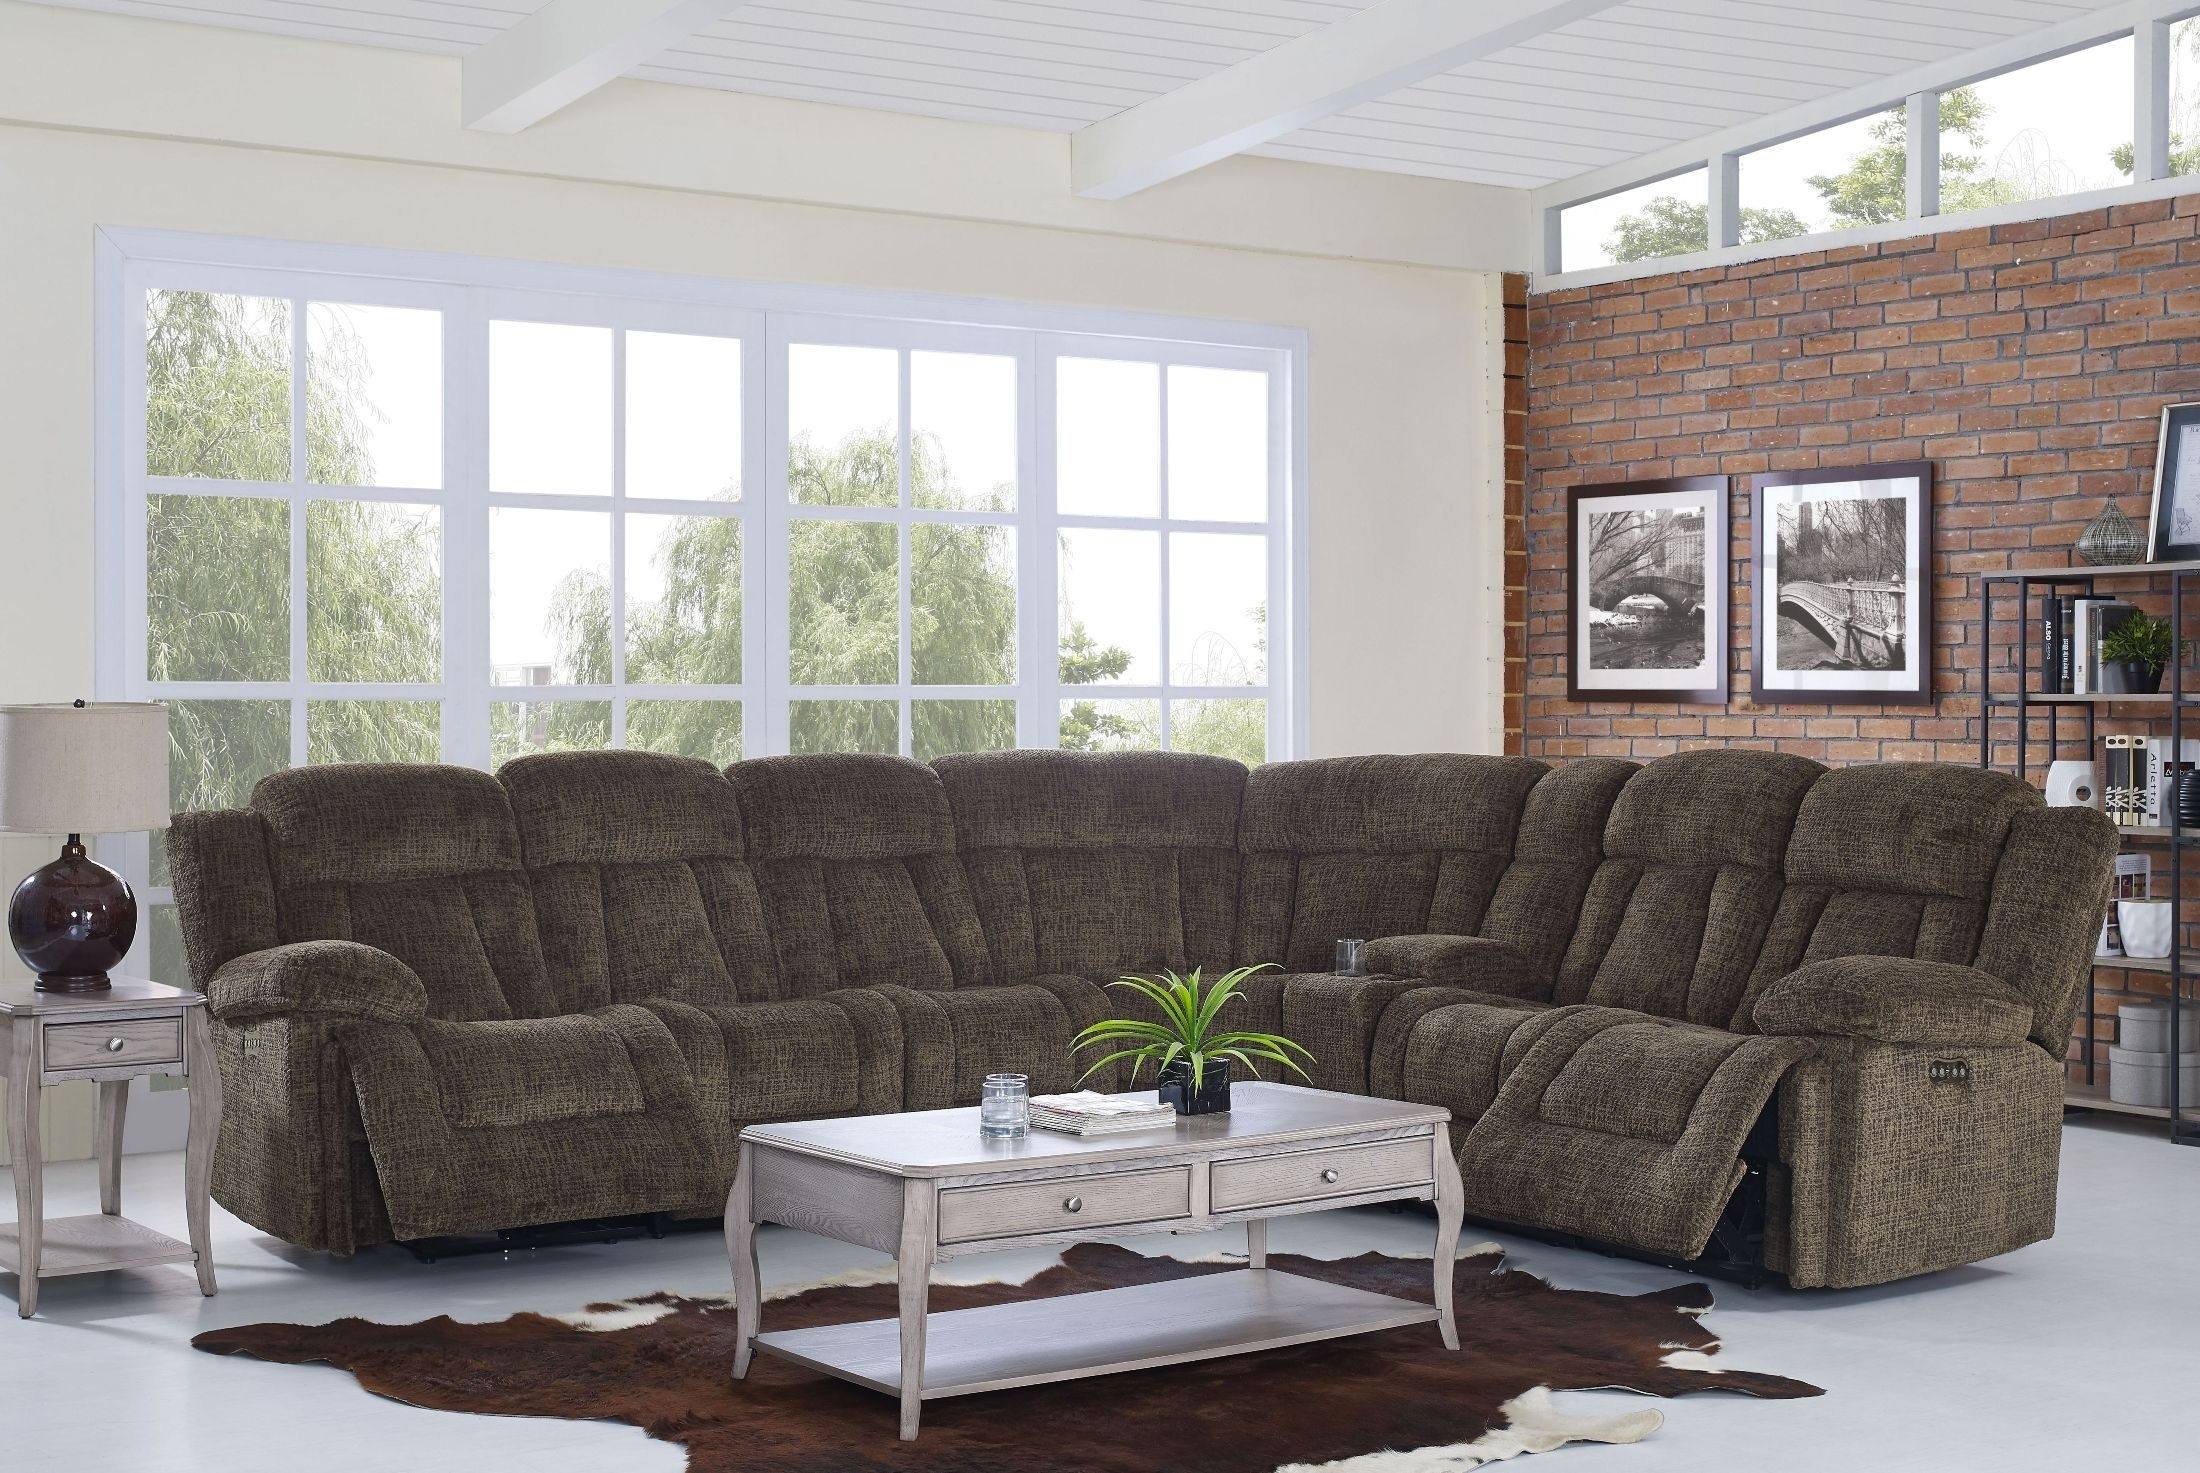 Laura Chocolate Reclining Sectional From New Classic | Coleman Furniture Within Turdur 2 Piece Sectionals With Laf Loveseat (Image 14 of 25)